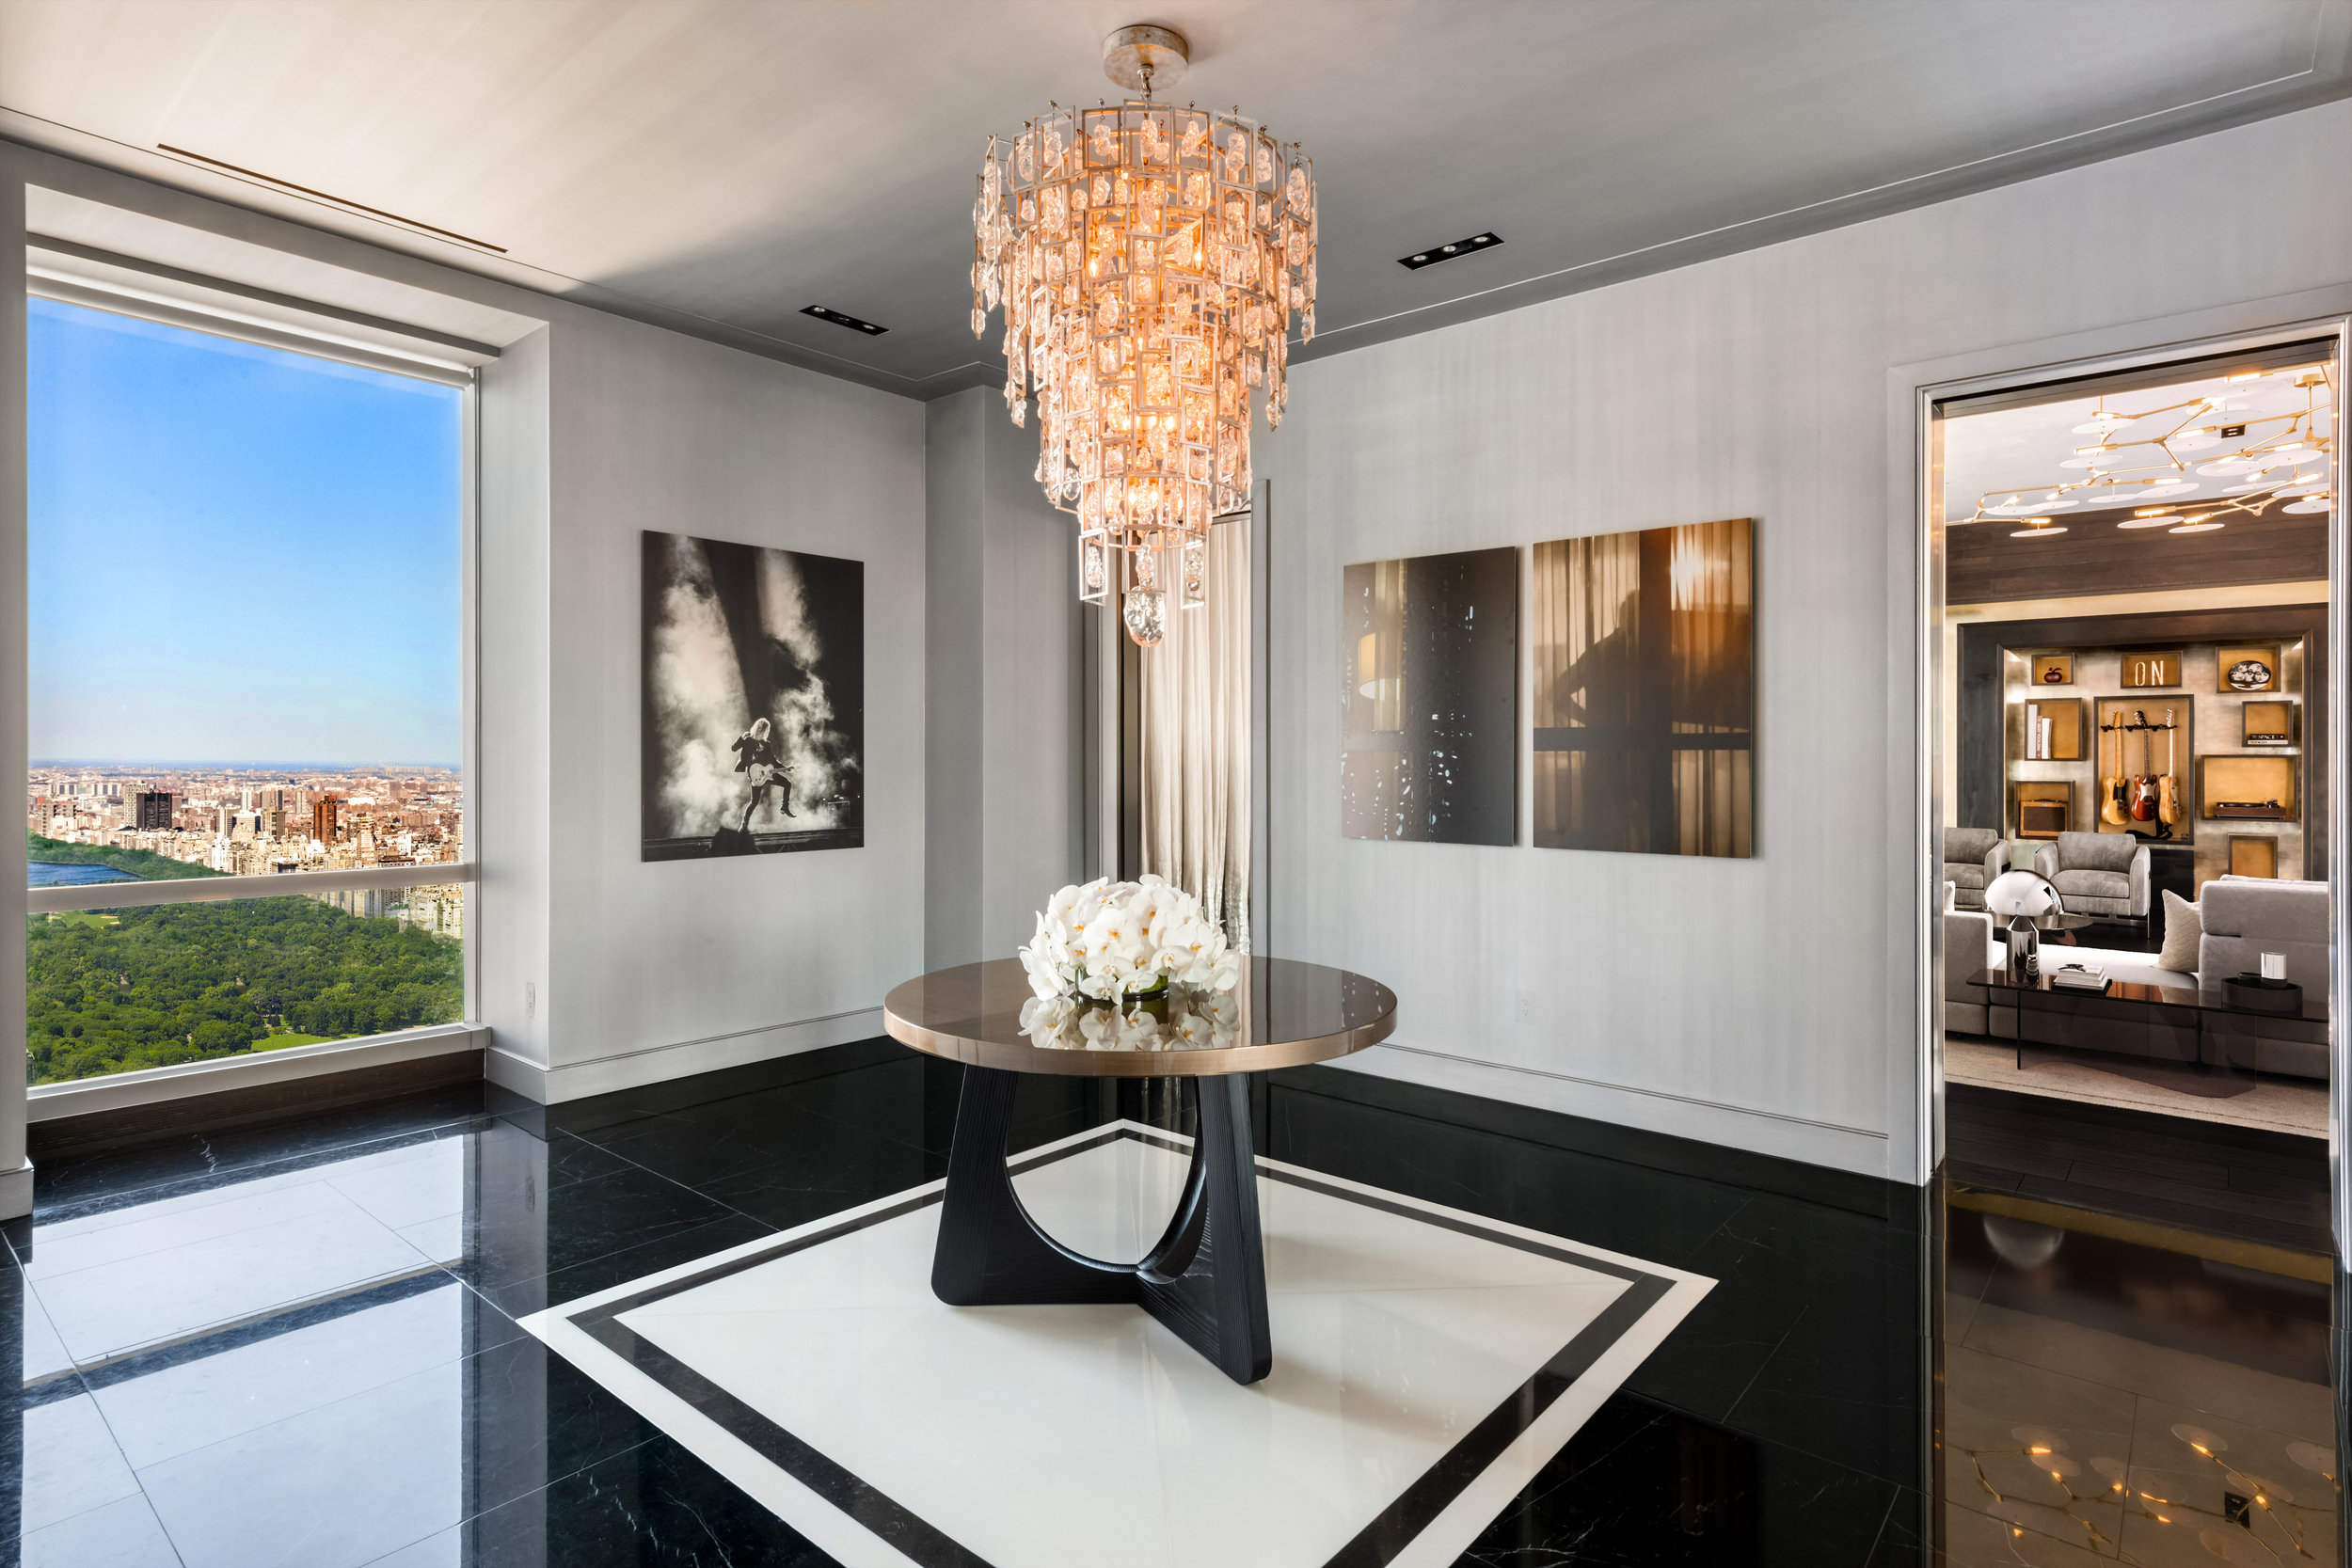 One57157West57thSt67B-CentralParkSouthNewYork_Anthony_Barillo_DouglasElliman_Photography_76924791_high_res.jpg